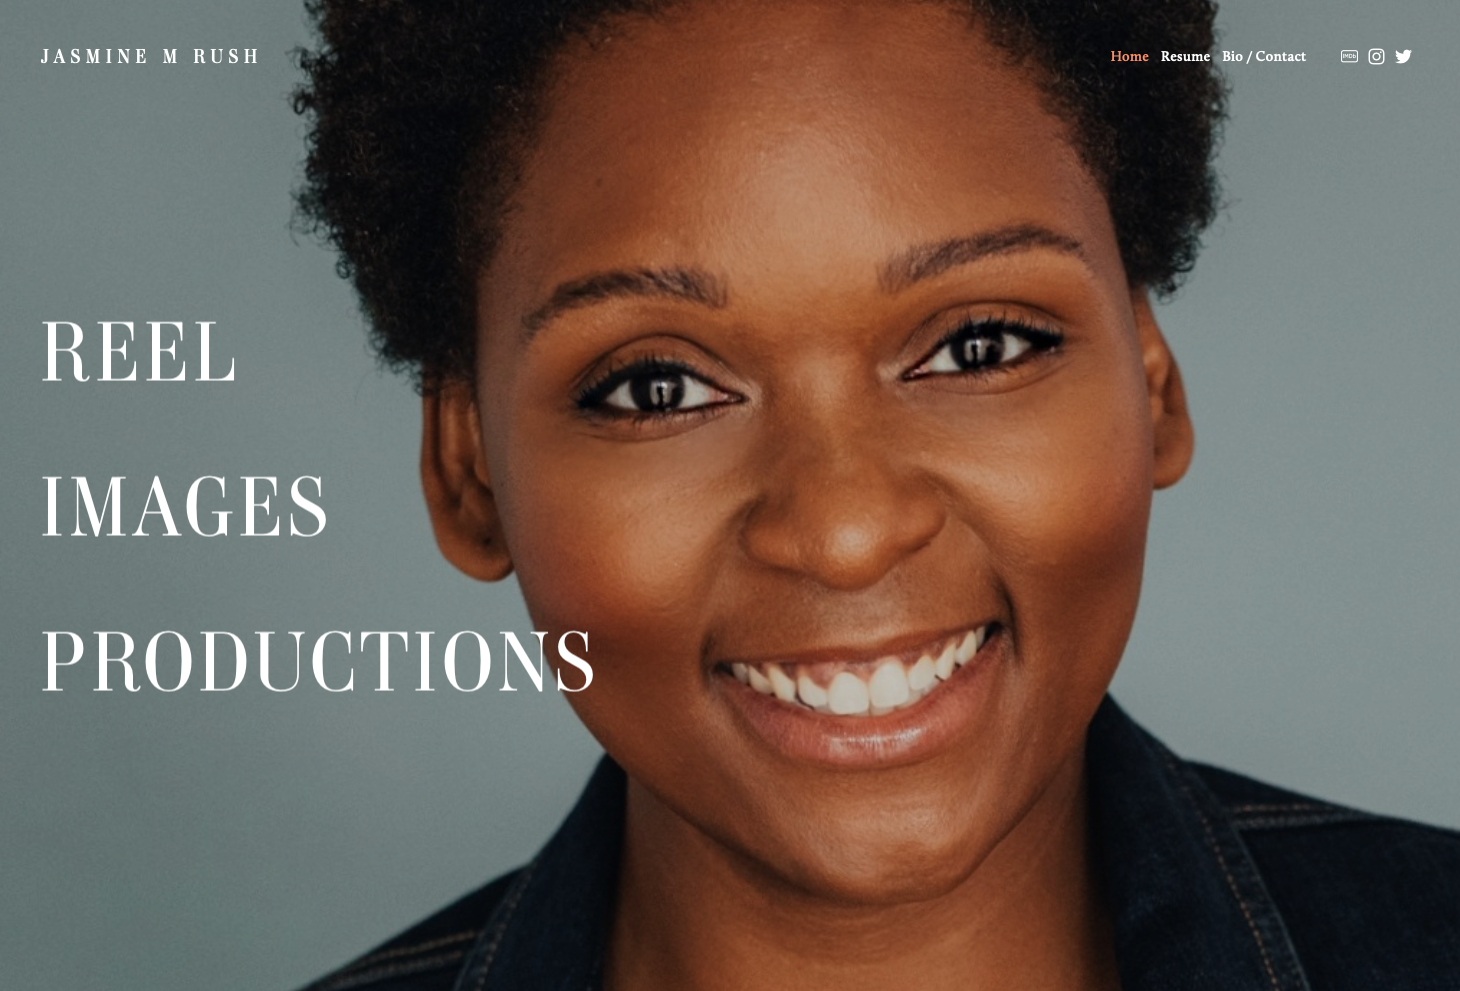 Actor Website for  Jasmine M Rush   Website Design by Iman